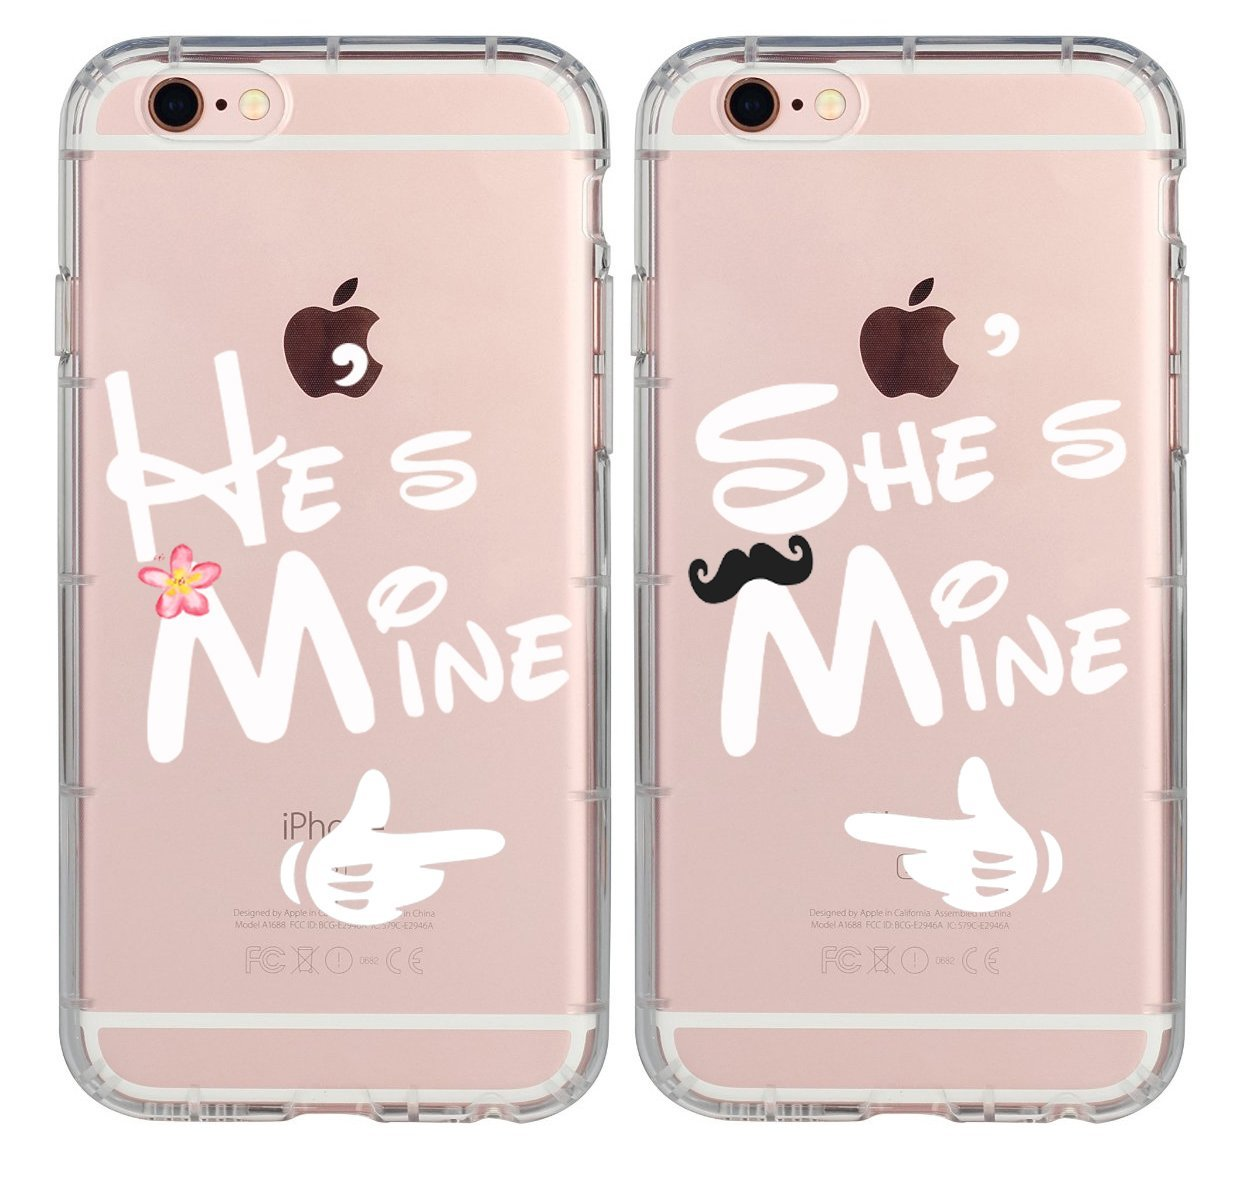 Boyfriend christmas gifts reviews on iphone